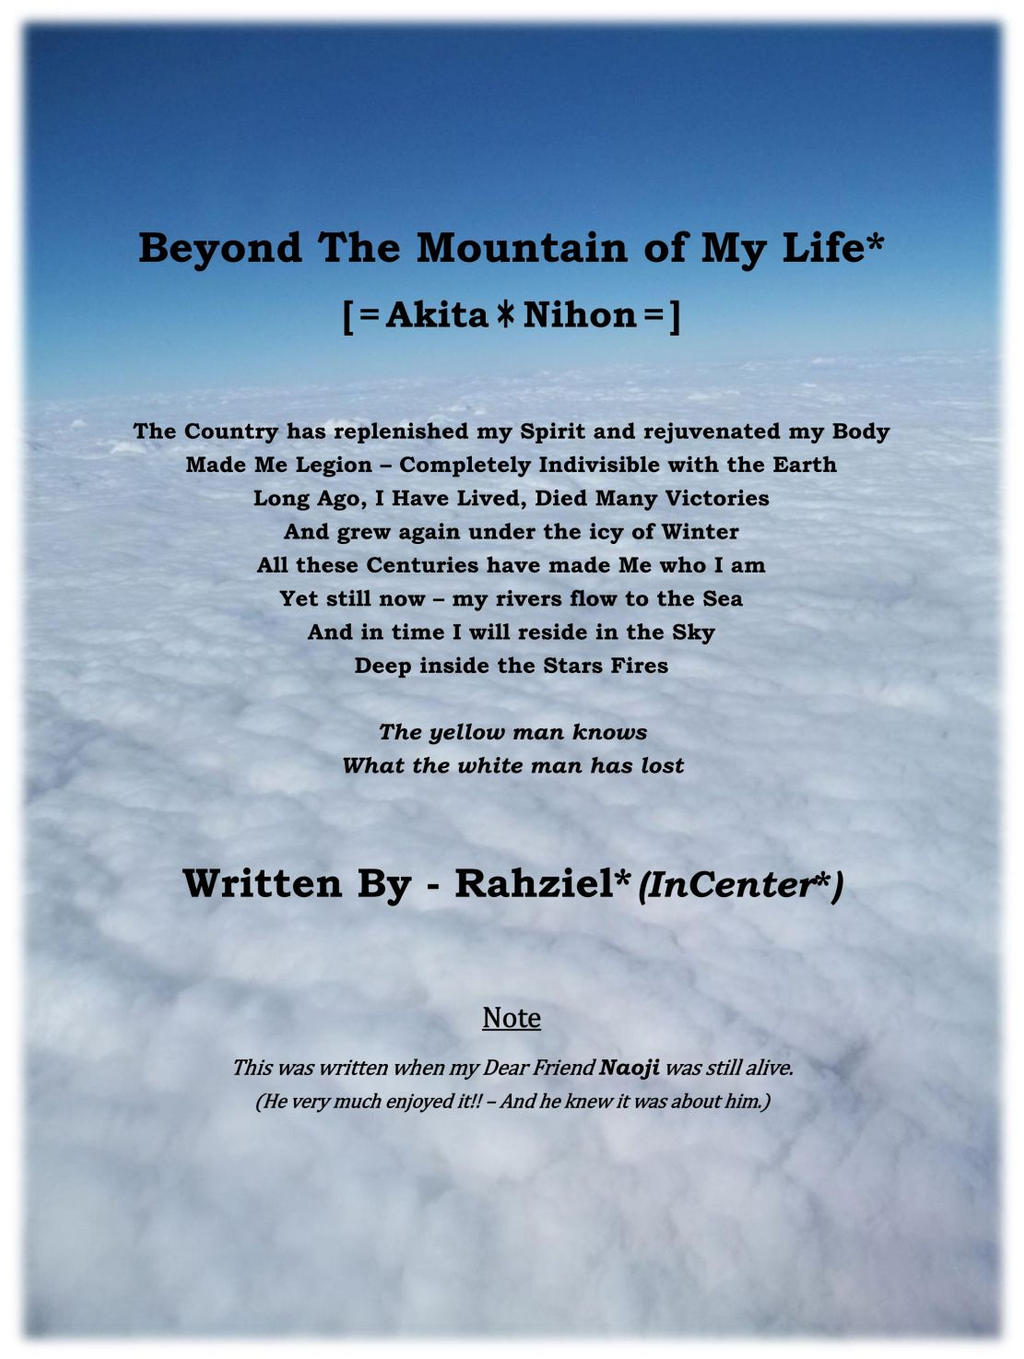 Beyond The Mountain of My Life - RzICxZz by InCenter